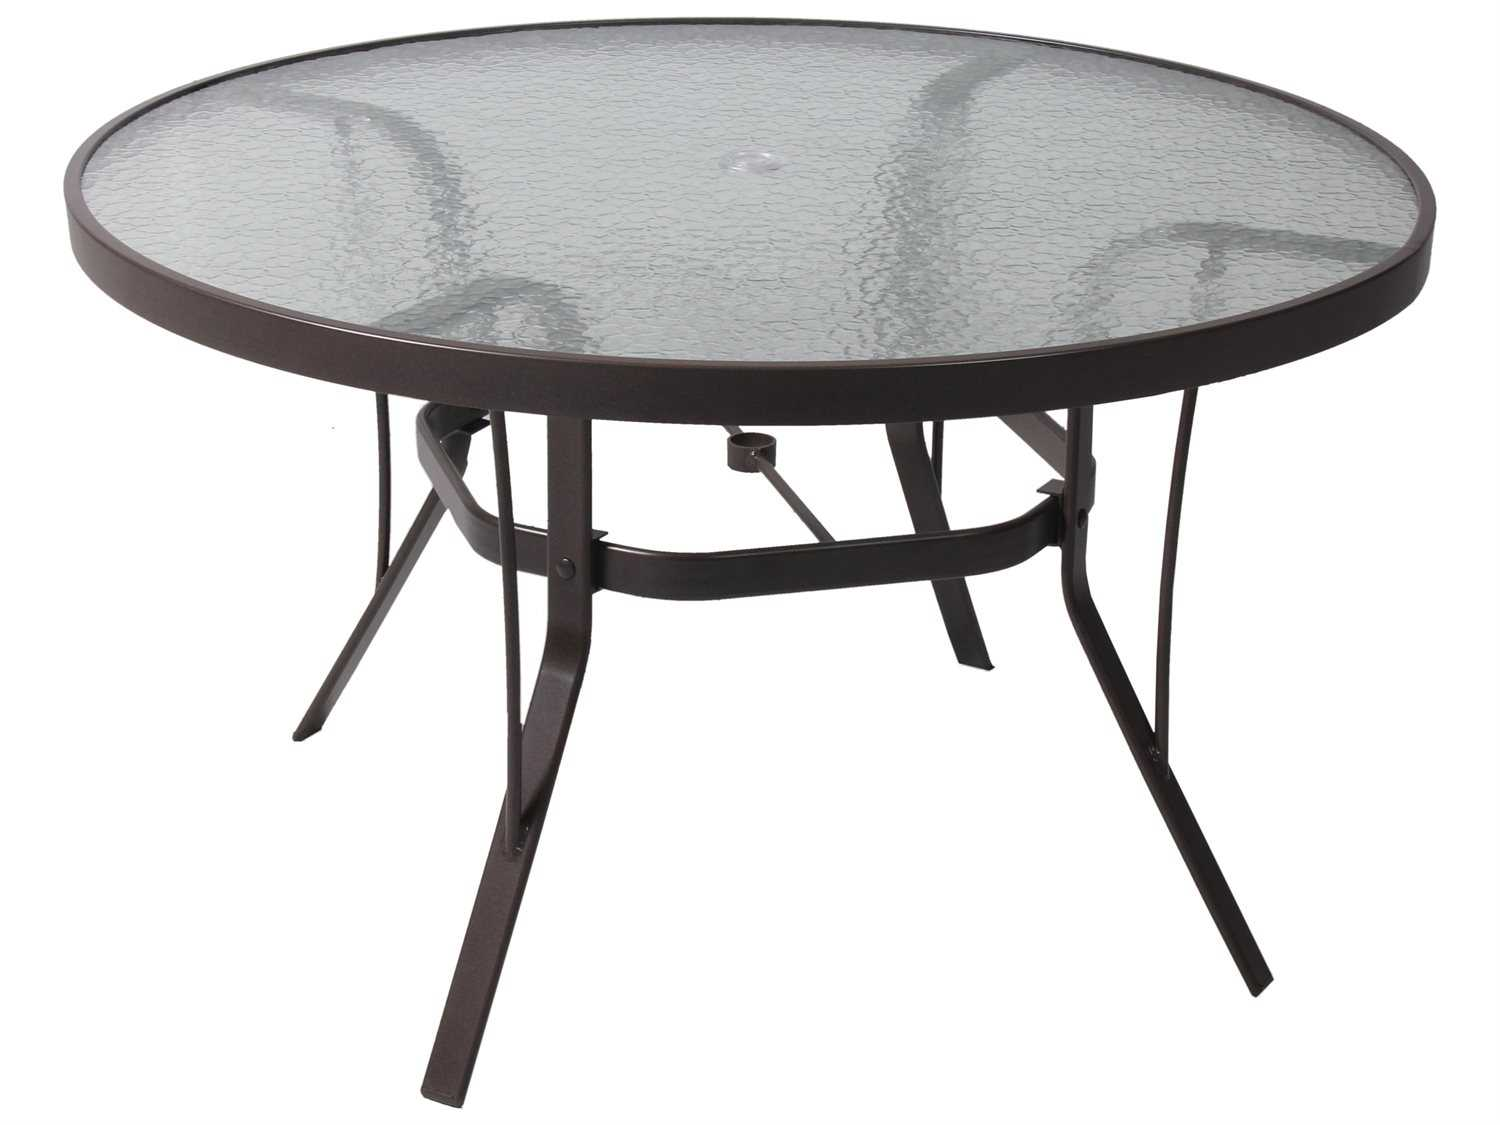 Suncoast cast aluminum 36 39 39 round glass top dining table Glass dining table